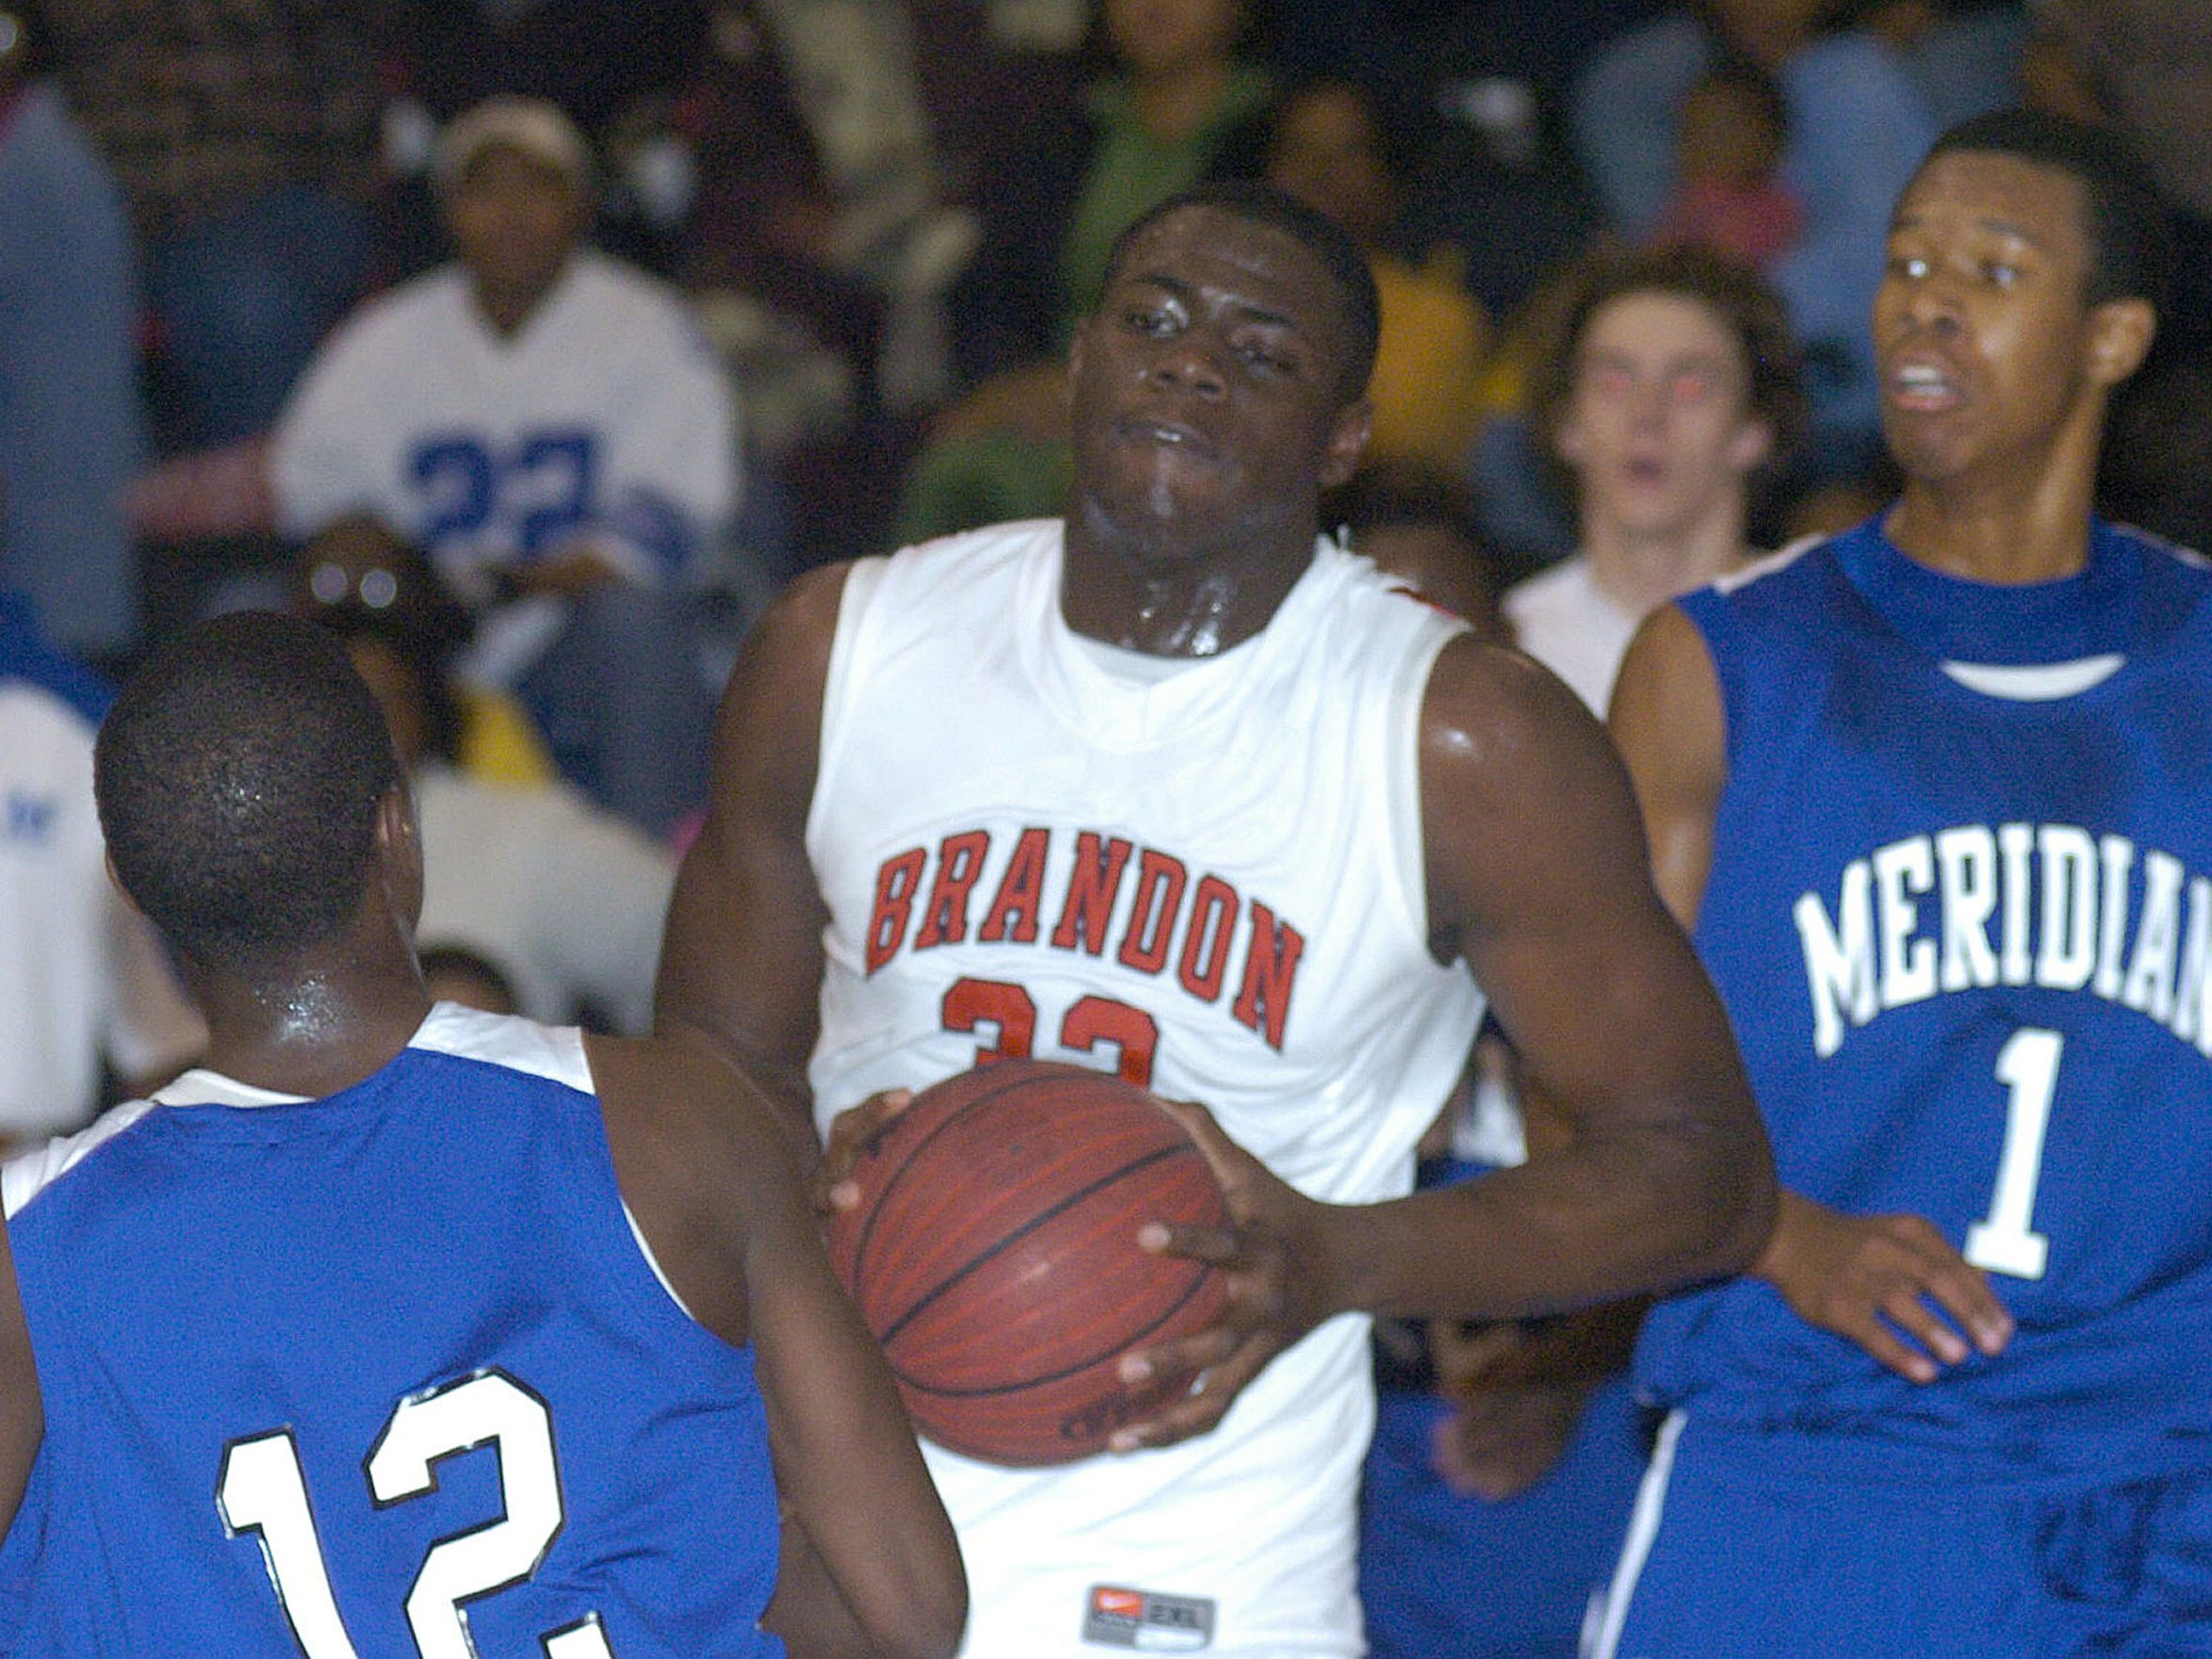 Brandon's Tyler Adams (center) drives to the basket against Marcus Hurn (left) and Rodney Hood of Meridian.